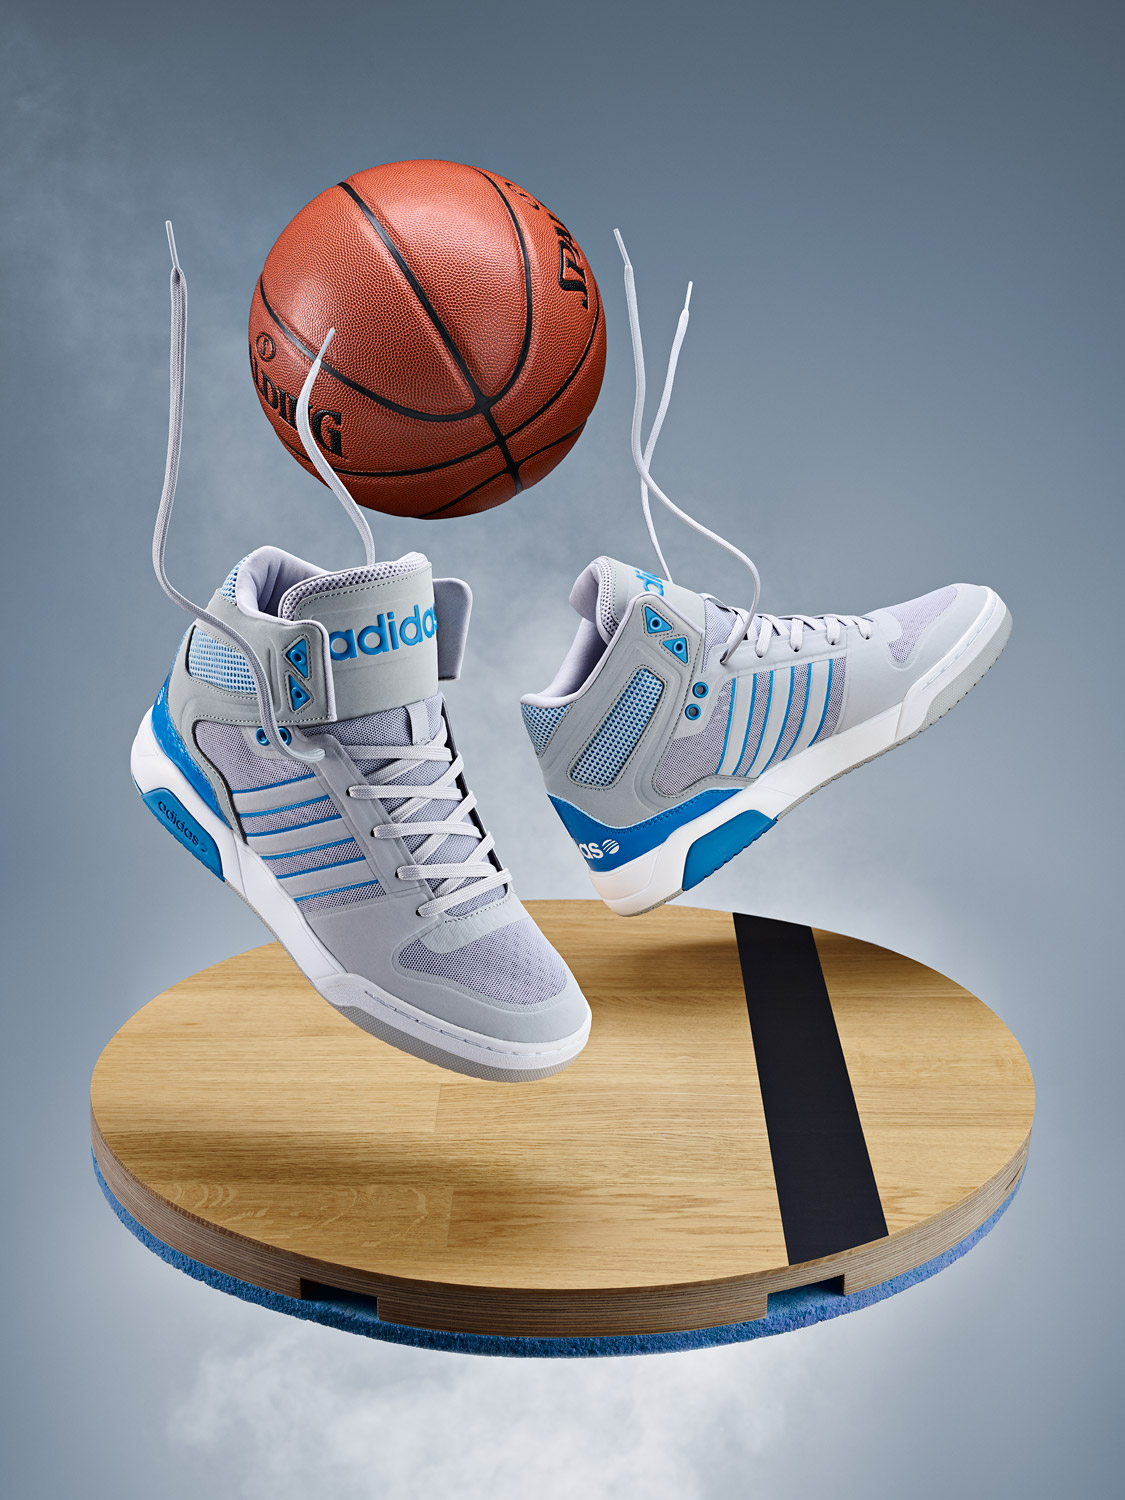 rvanderplank-trainer-test-basketball-v2.jpg